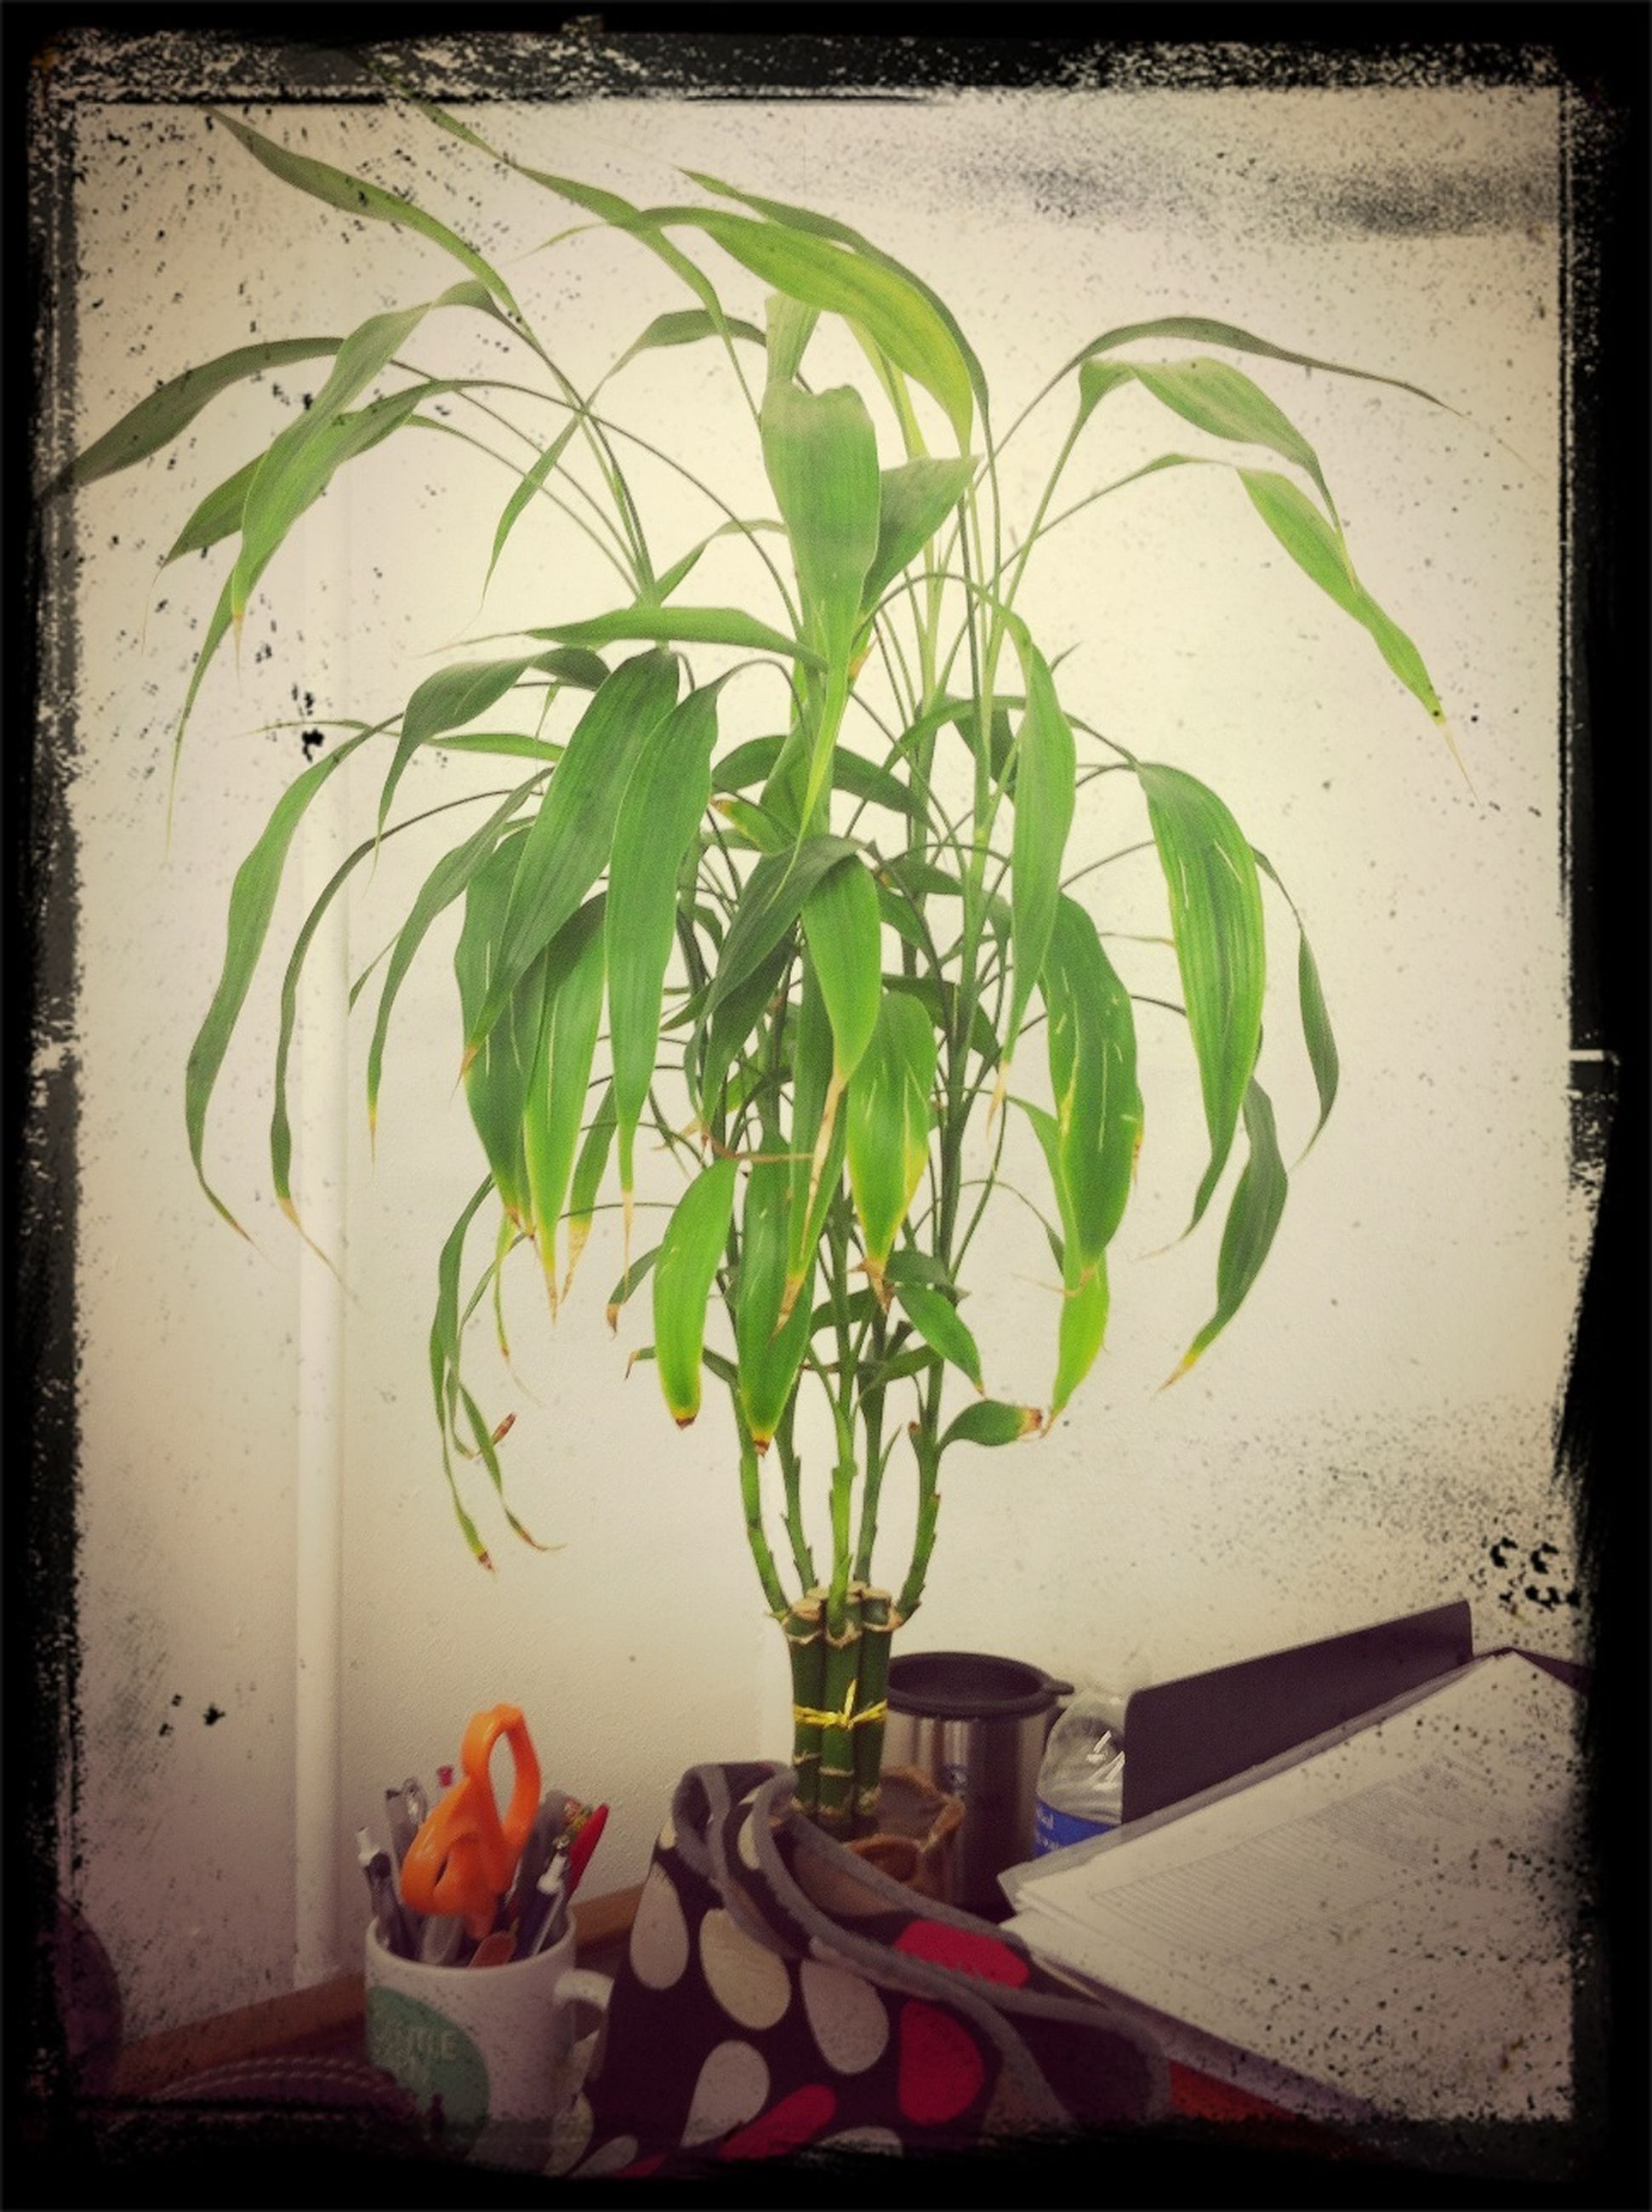 indoors, leaf, potted plant, plant, table, growth, vase, freshness, green color, close-up, wall - building feature, auto post production filter, still life, transfer print, home interior, stem, flower pot, high angle view, no people, flower